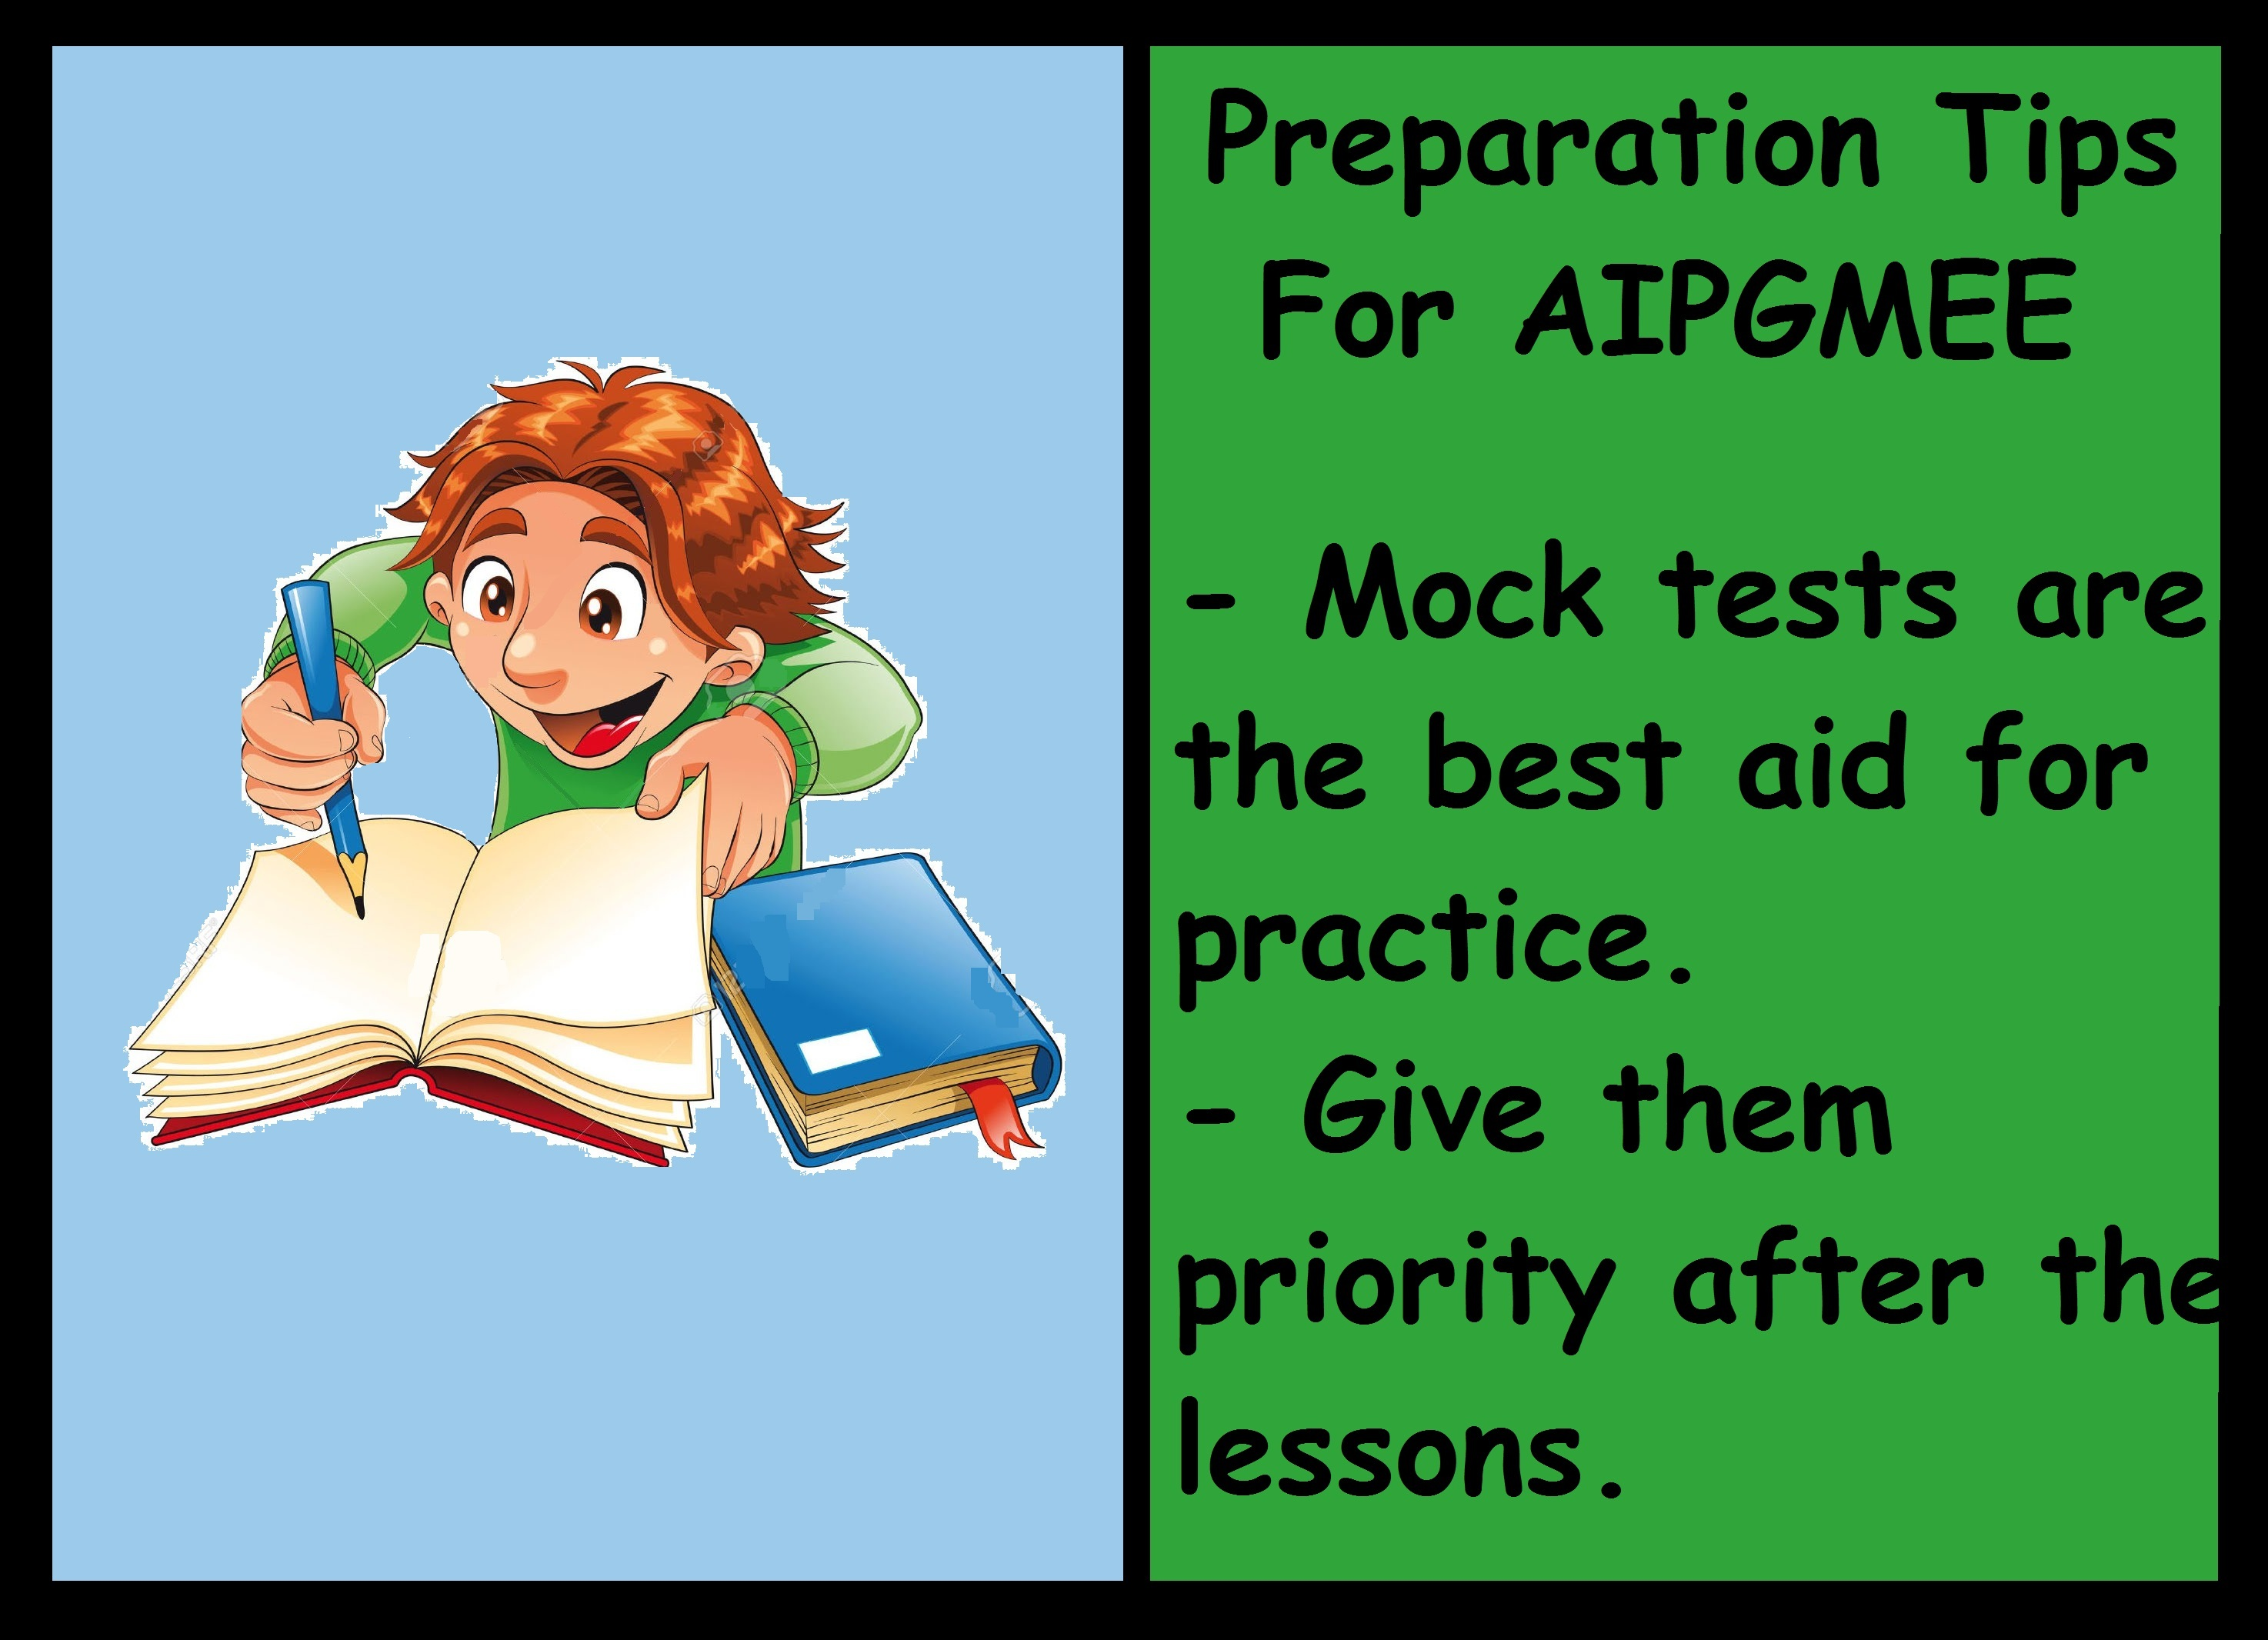 AIPGMEE Preparation Tips-Take Tests